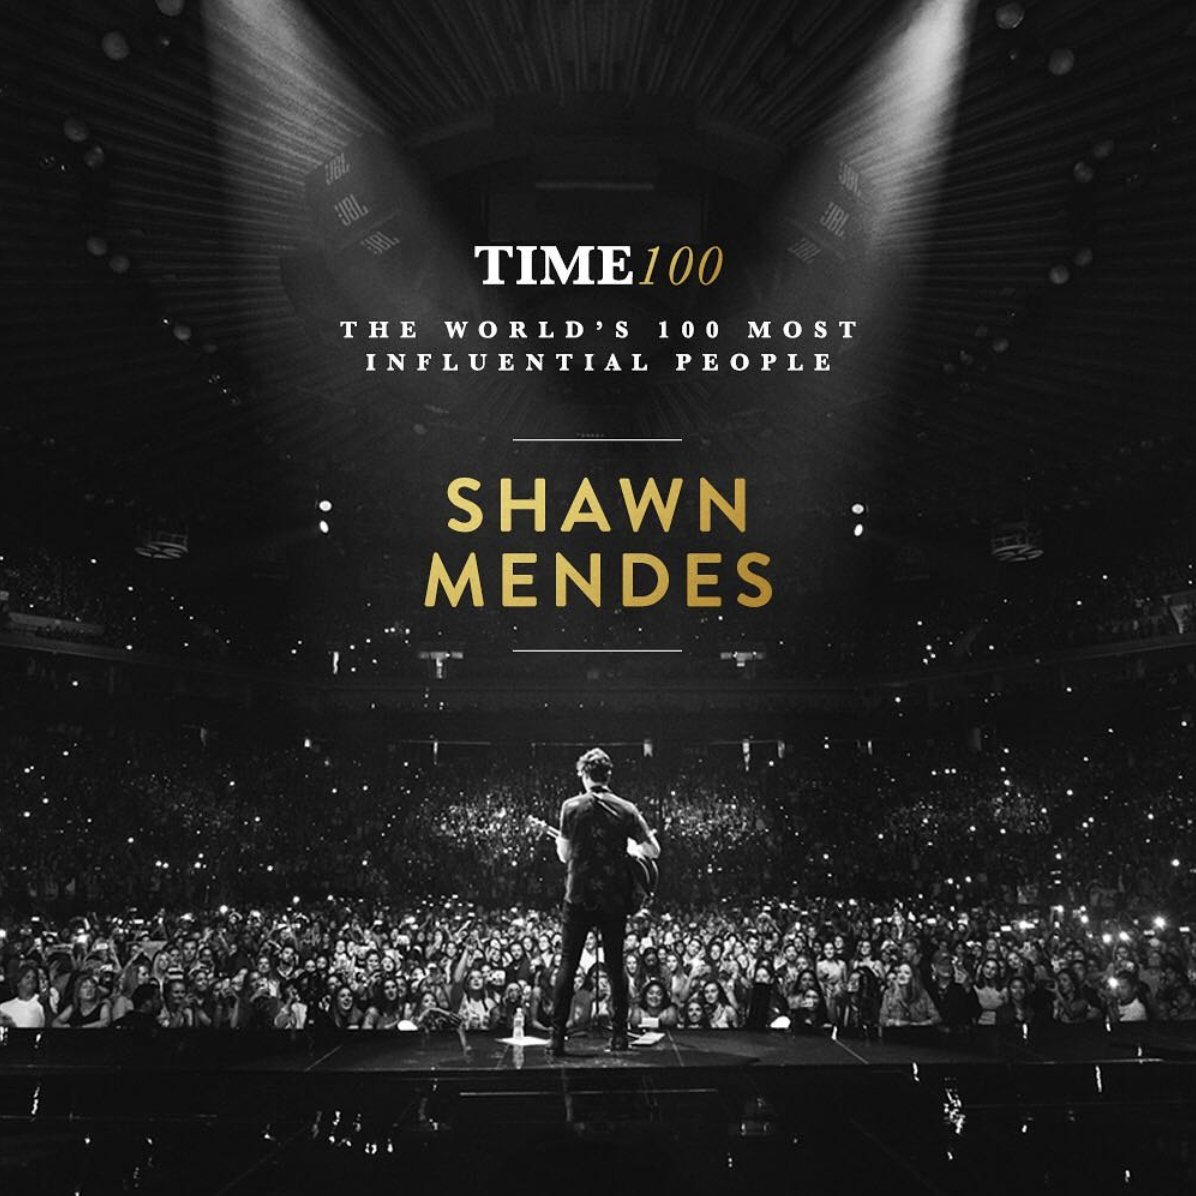 �� @shawnmendes was named to @TIME's #TIME100! Read @johnmayer's write-up here: https://t.co/tfkdz3no5z https://t.co/HIjRJX28Vs